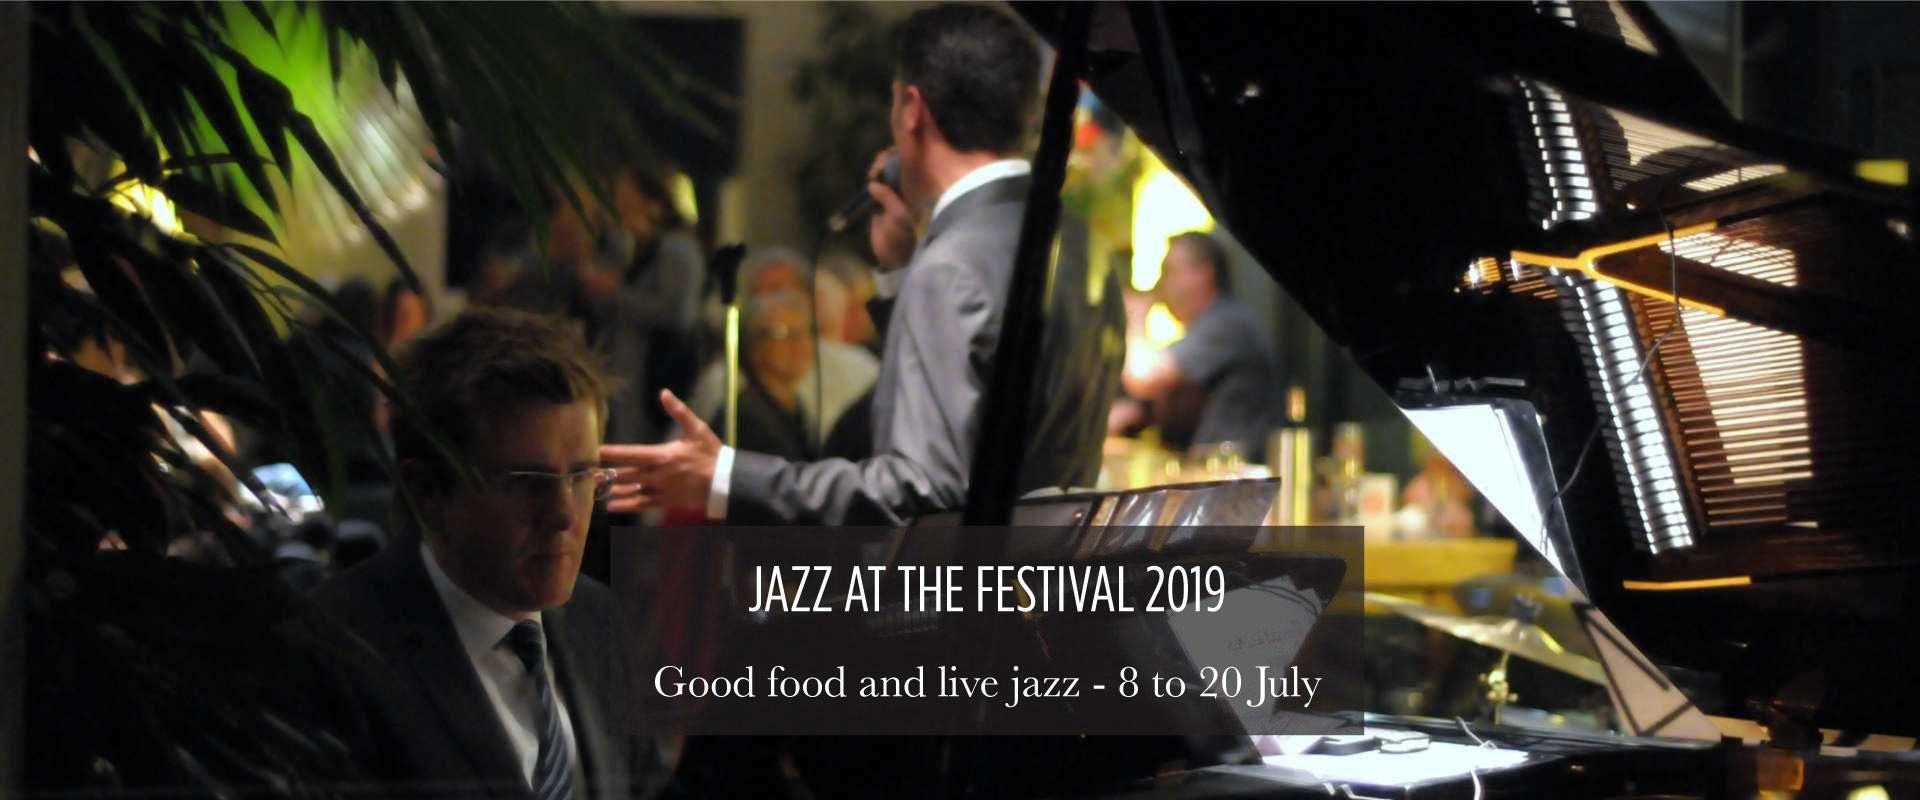 Lussmanns St Albans presents Jazz at the Festival